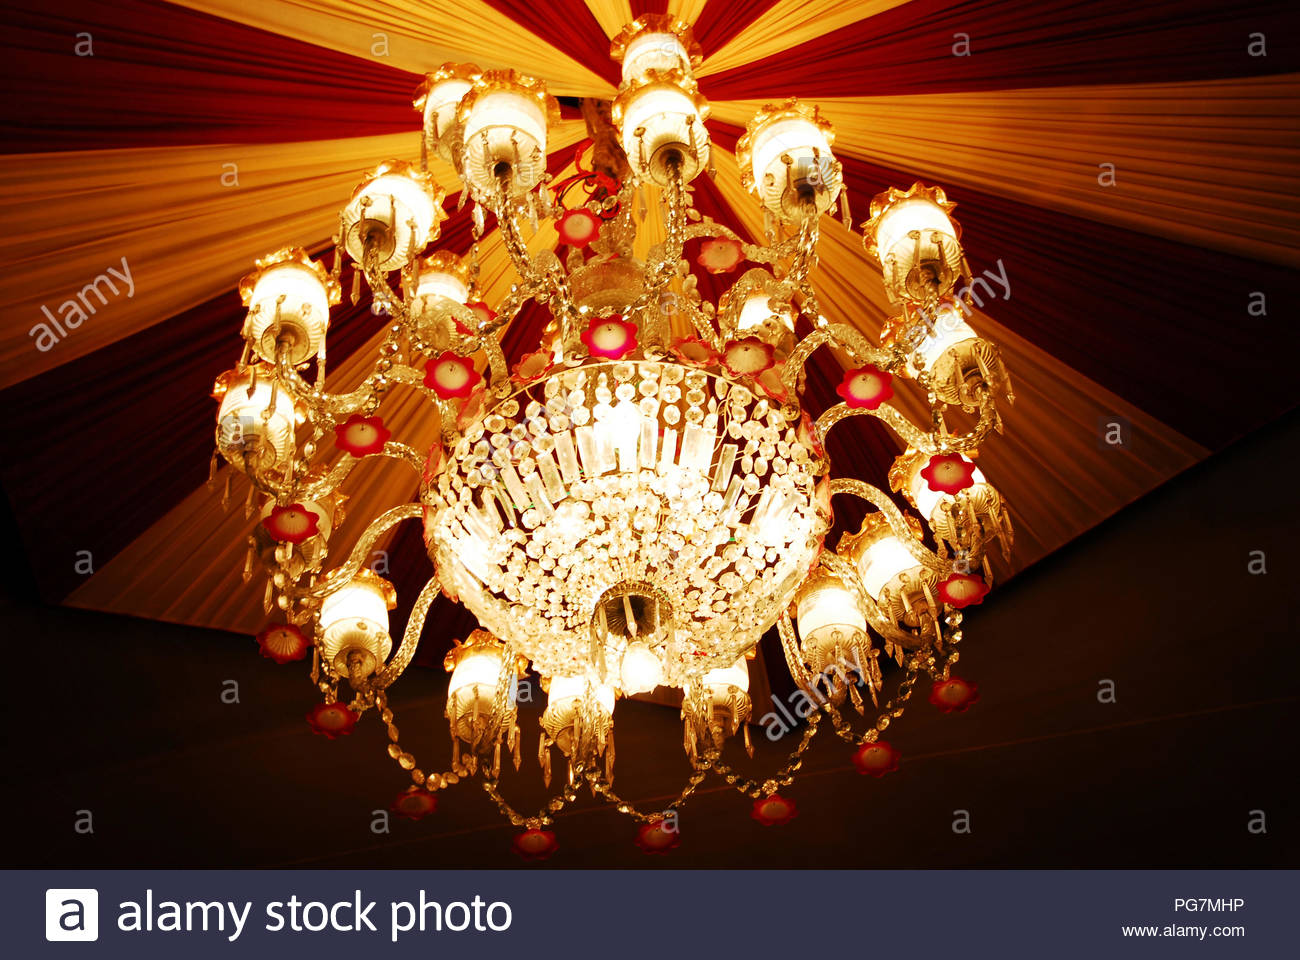 isolated shot of Home interiors Chandelier on ceiling - Stock Image